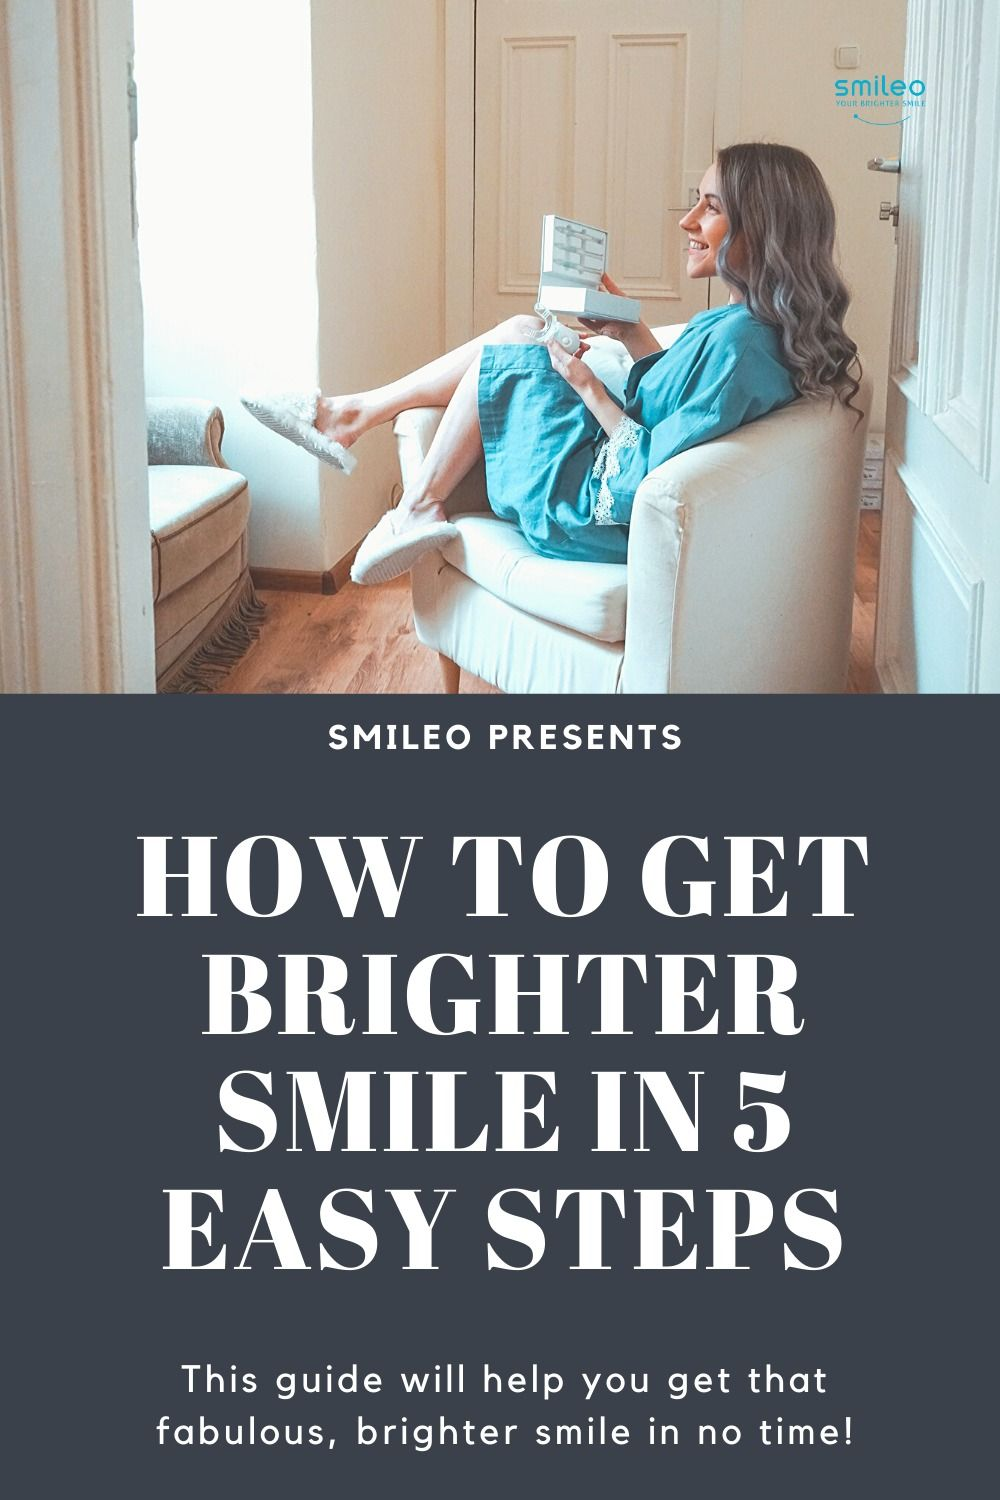 Check out our blog on How to get Brighter Smile in 5 Easy Steps 😊 #Brighterteeth #smileo #TeethWhitening #OralCare #Beauty #BeautyProducts #NaturalProducts #AllNatural #AtHomeWhitening #BrighterSmile #VeganProduct #OralCosmetics #CrueltyFree #CrueltyFreeBeauty #CrueltyFreeCosmetics #OralCareRoutineBeautyProducts #WhiteTeeth